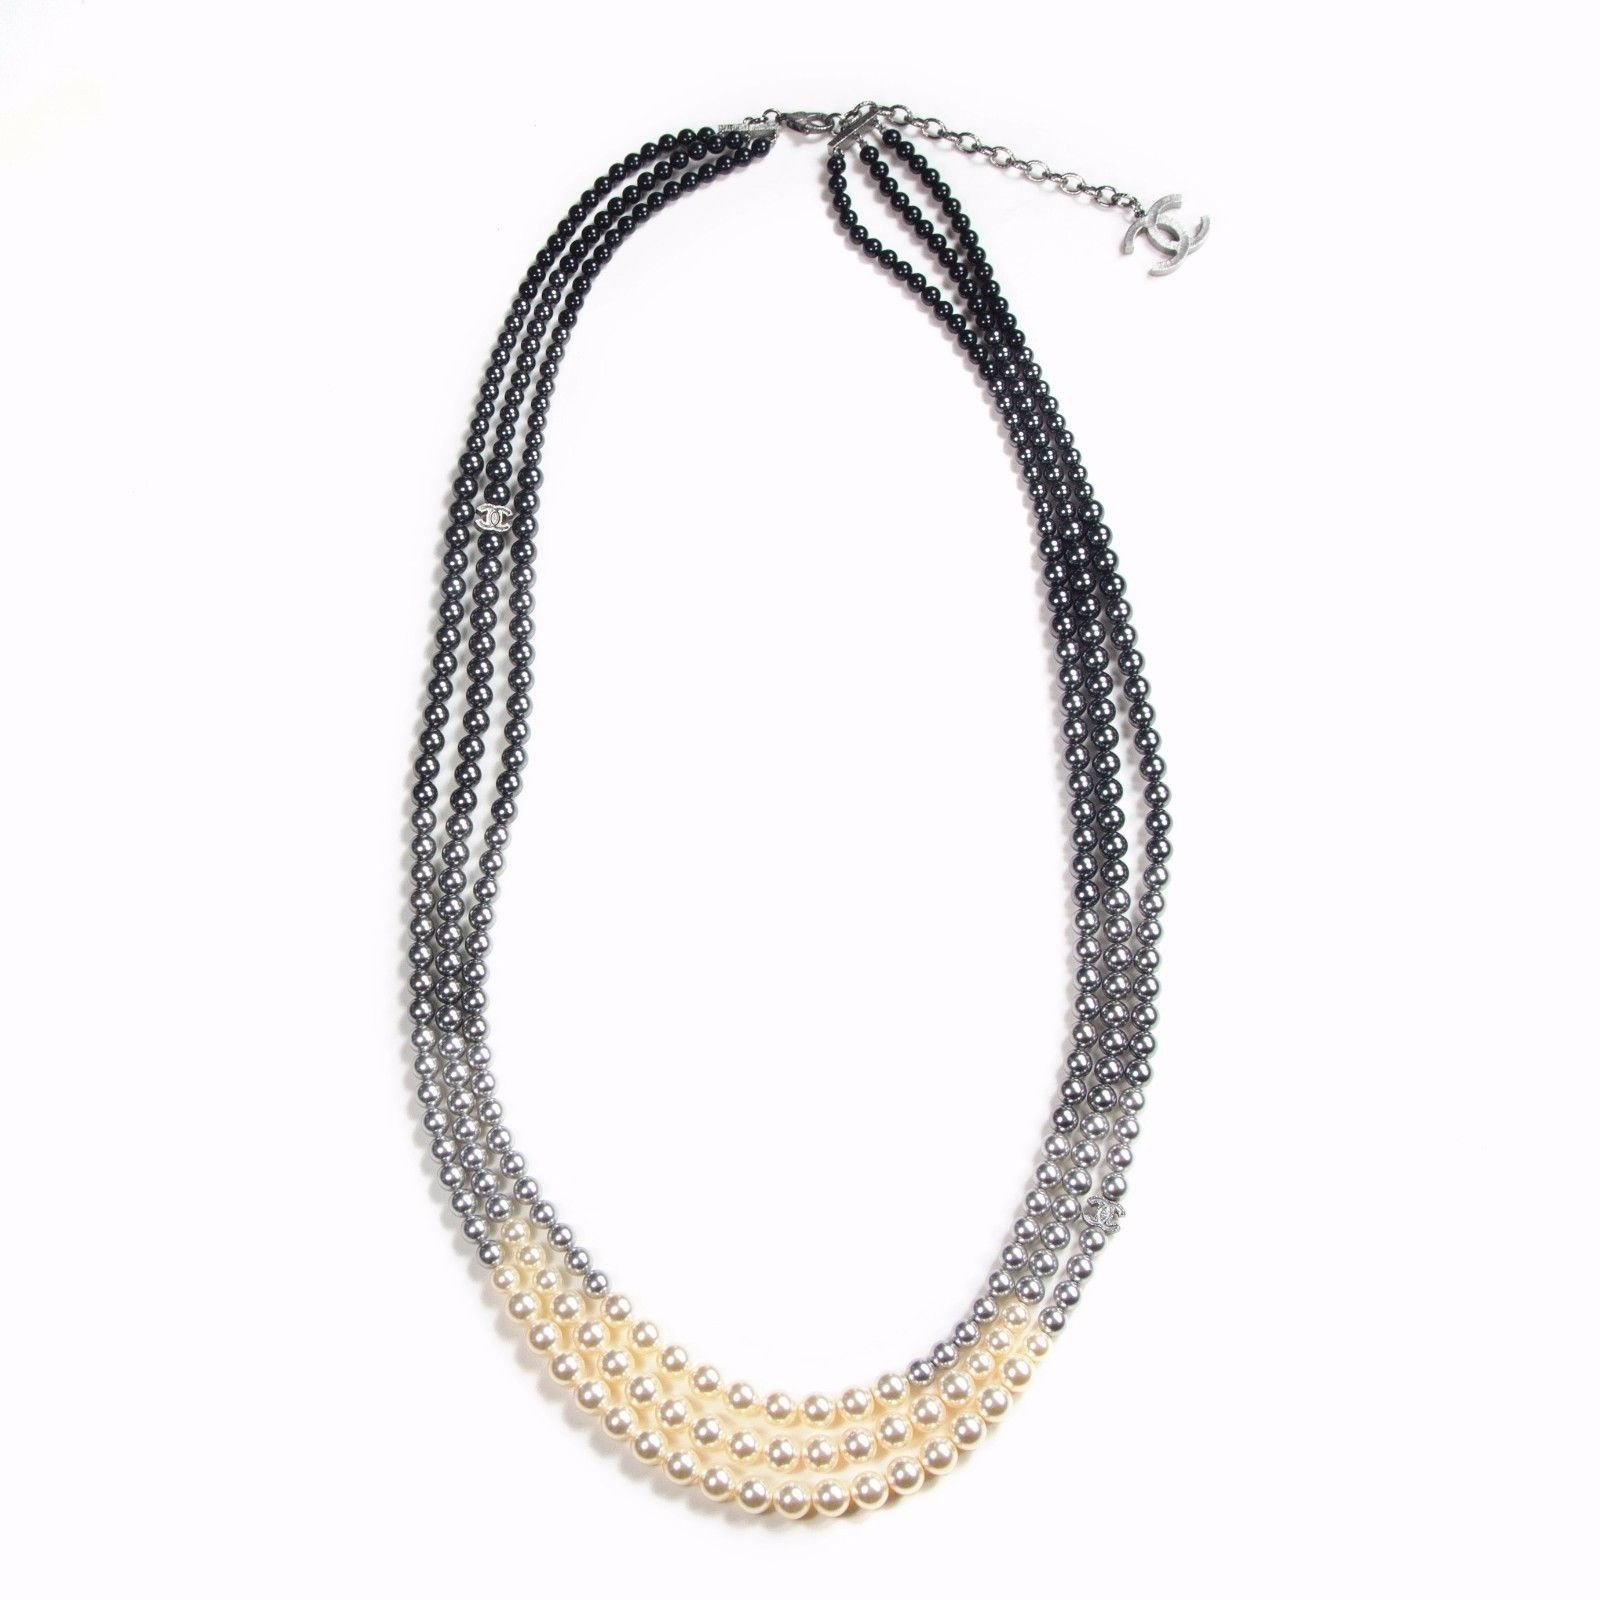 Chanel 2015 Multistrand Gradient Pearl Necklace Necklaces Rope Multiple  Colors Ref37026